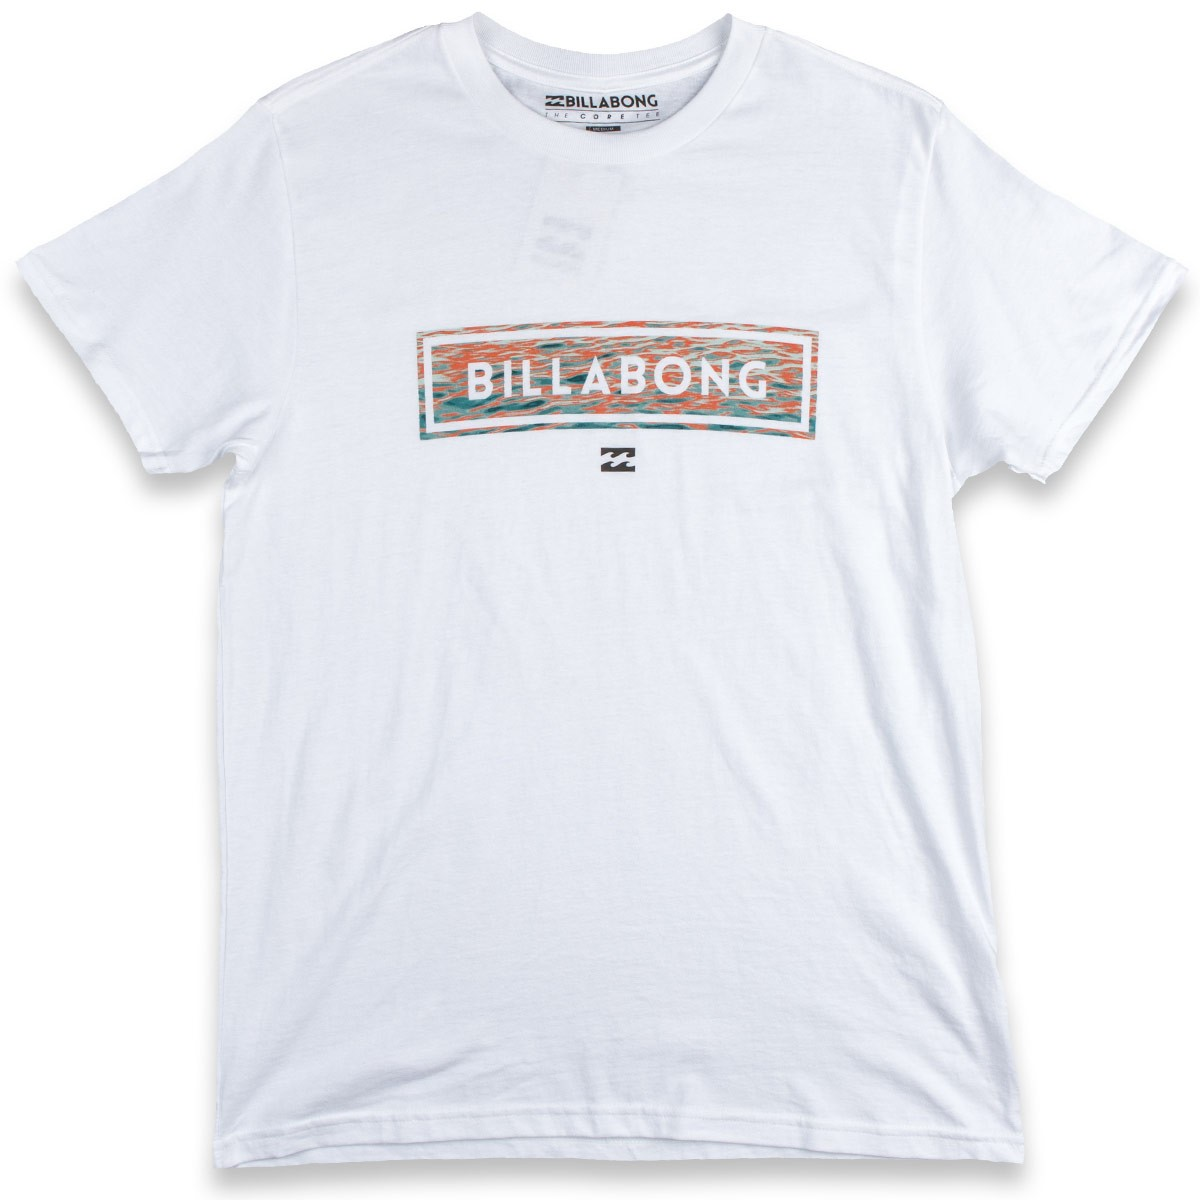 Billabong Cohesive T-Shirt - White